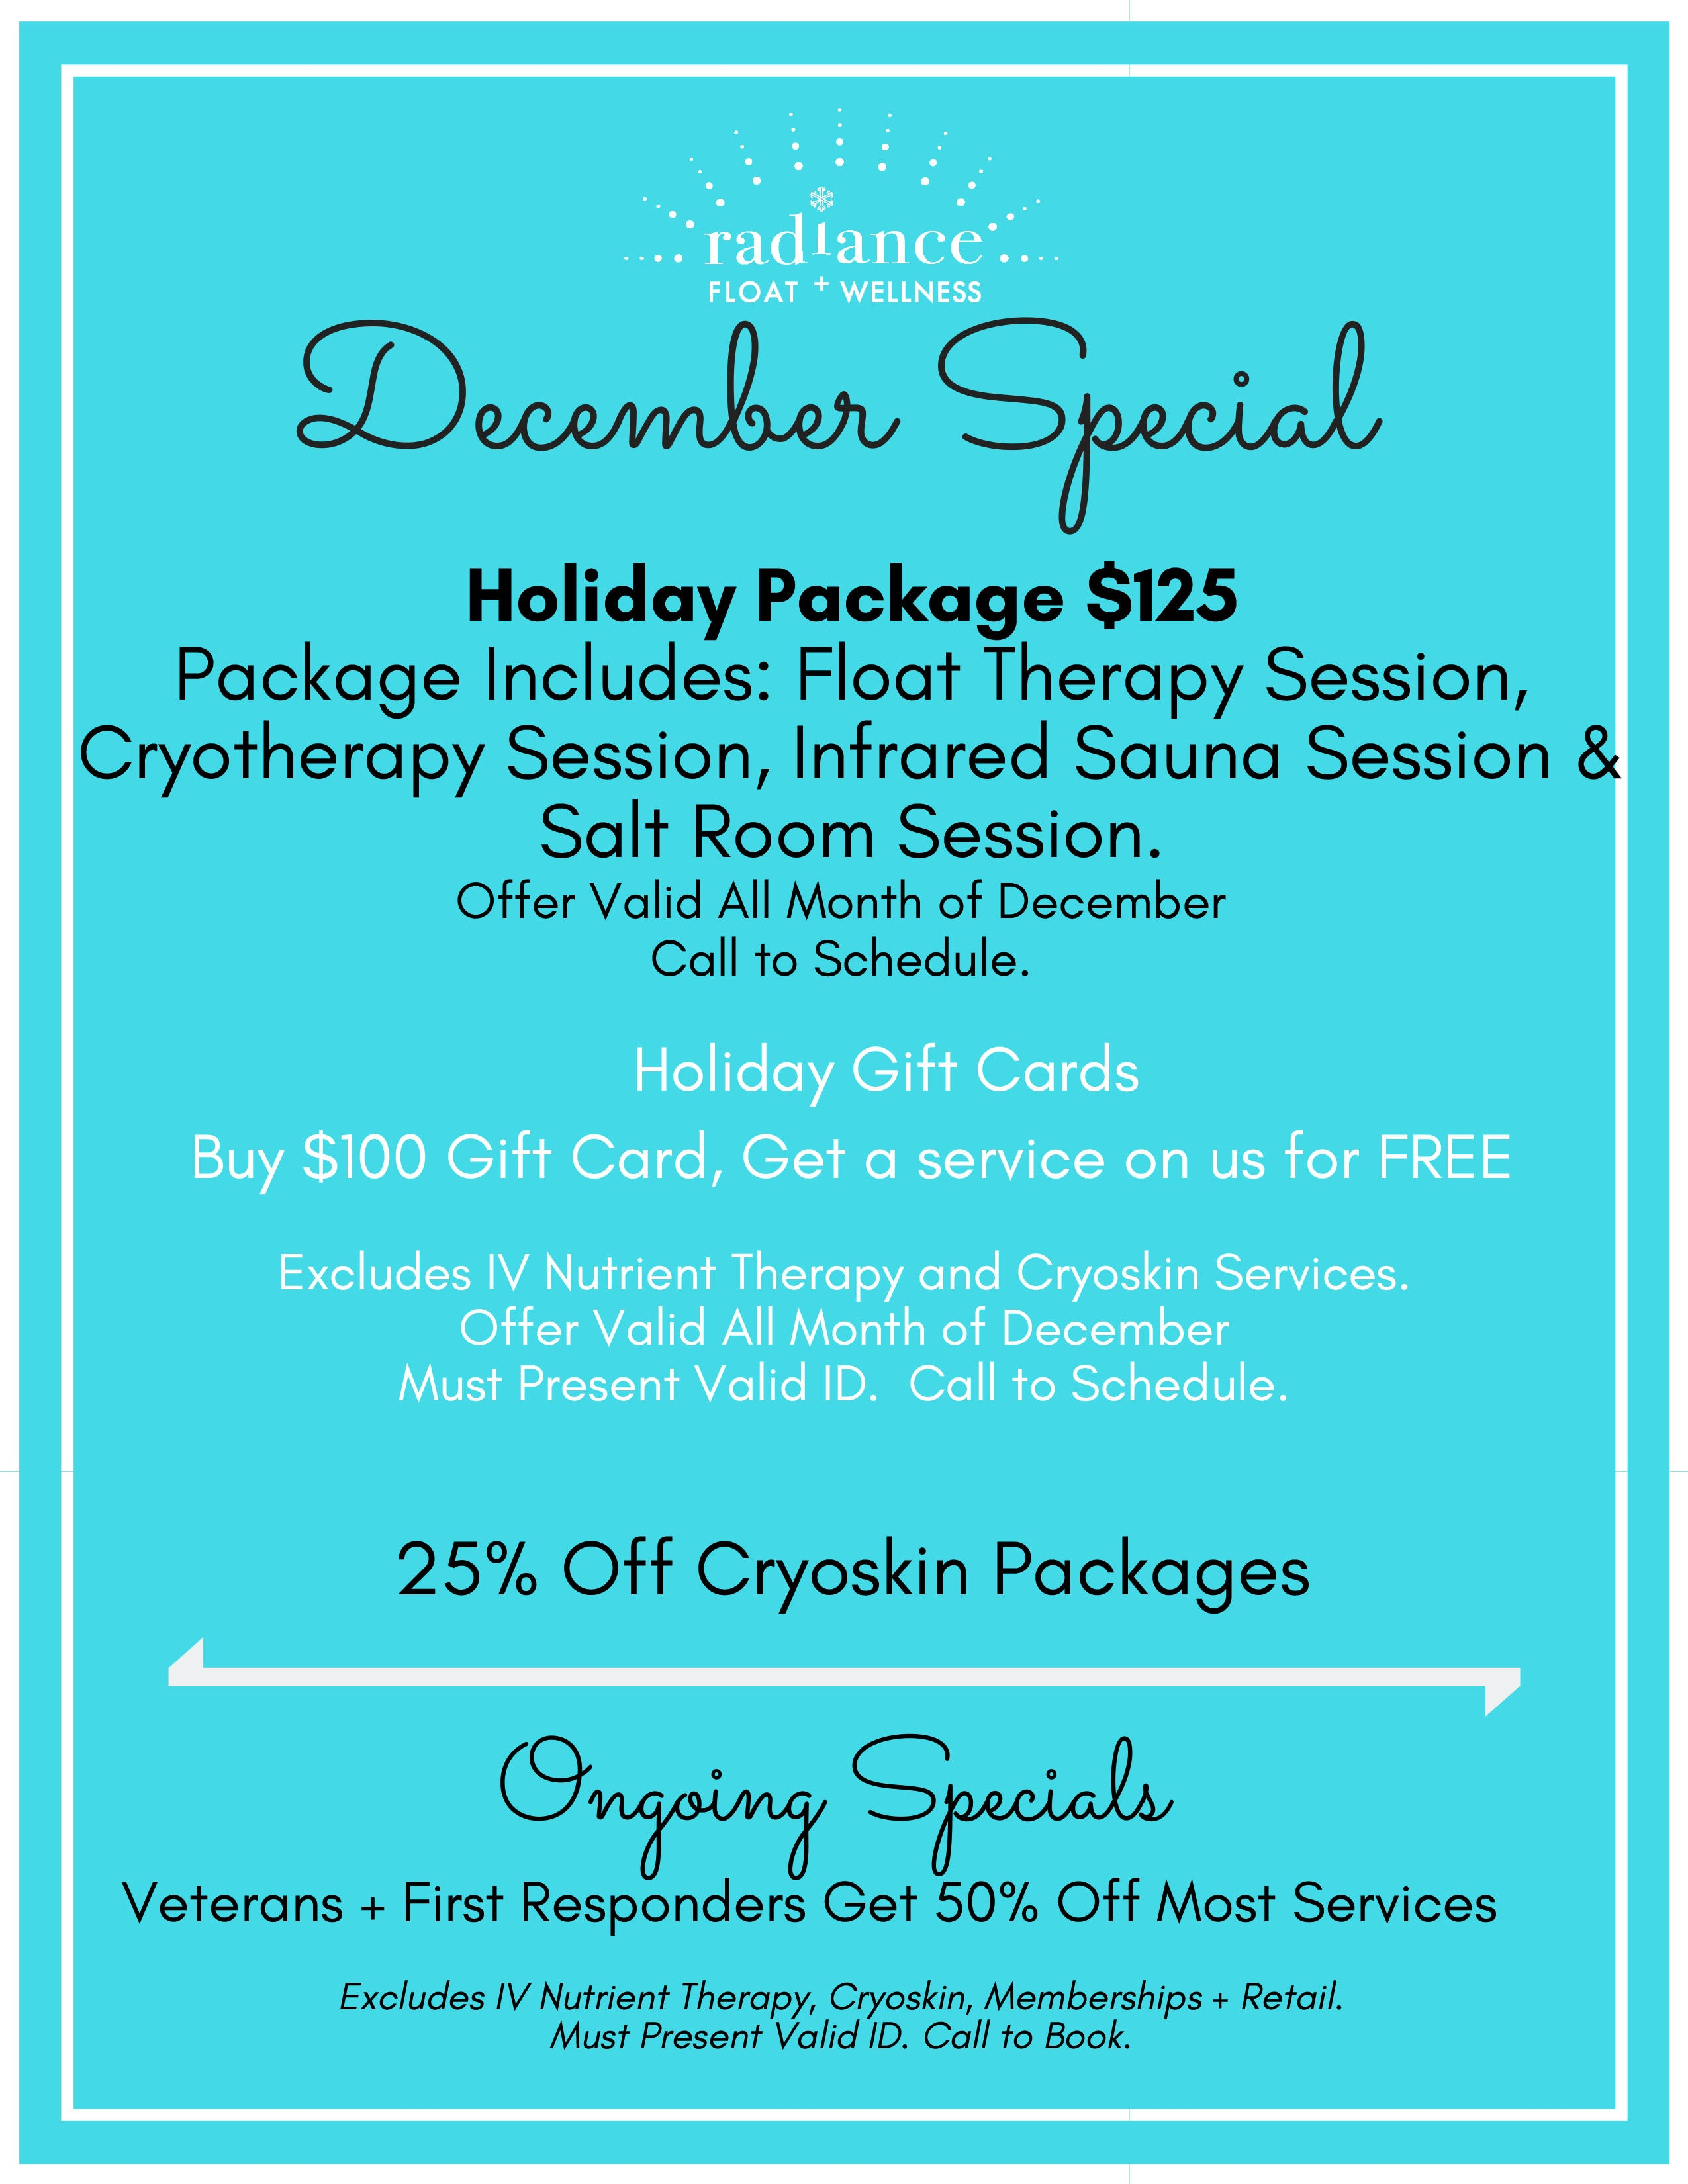 Radiance St. Louis December holiday specials and deals